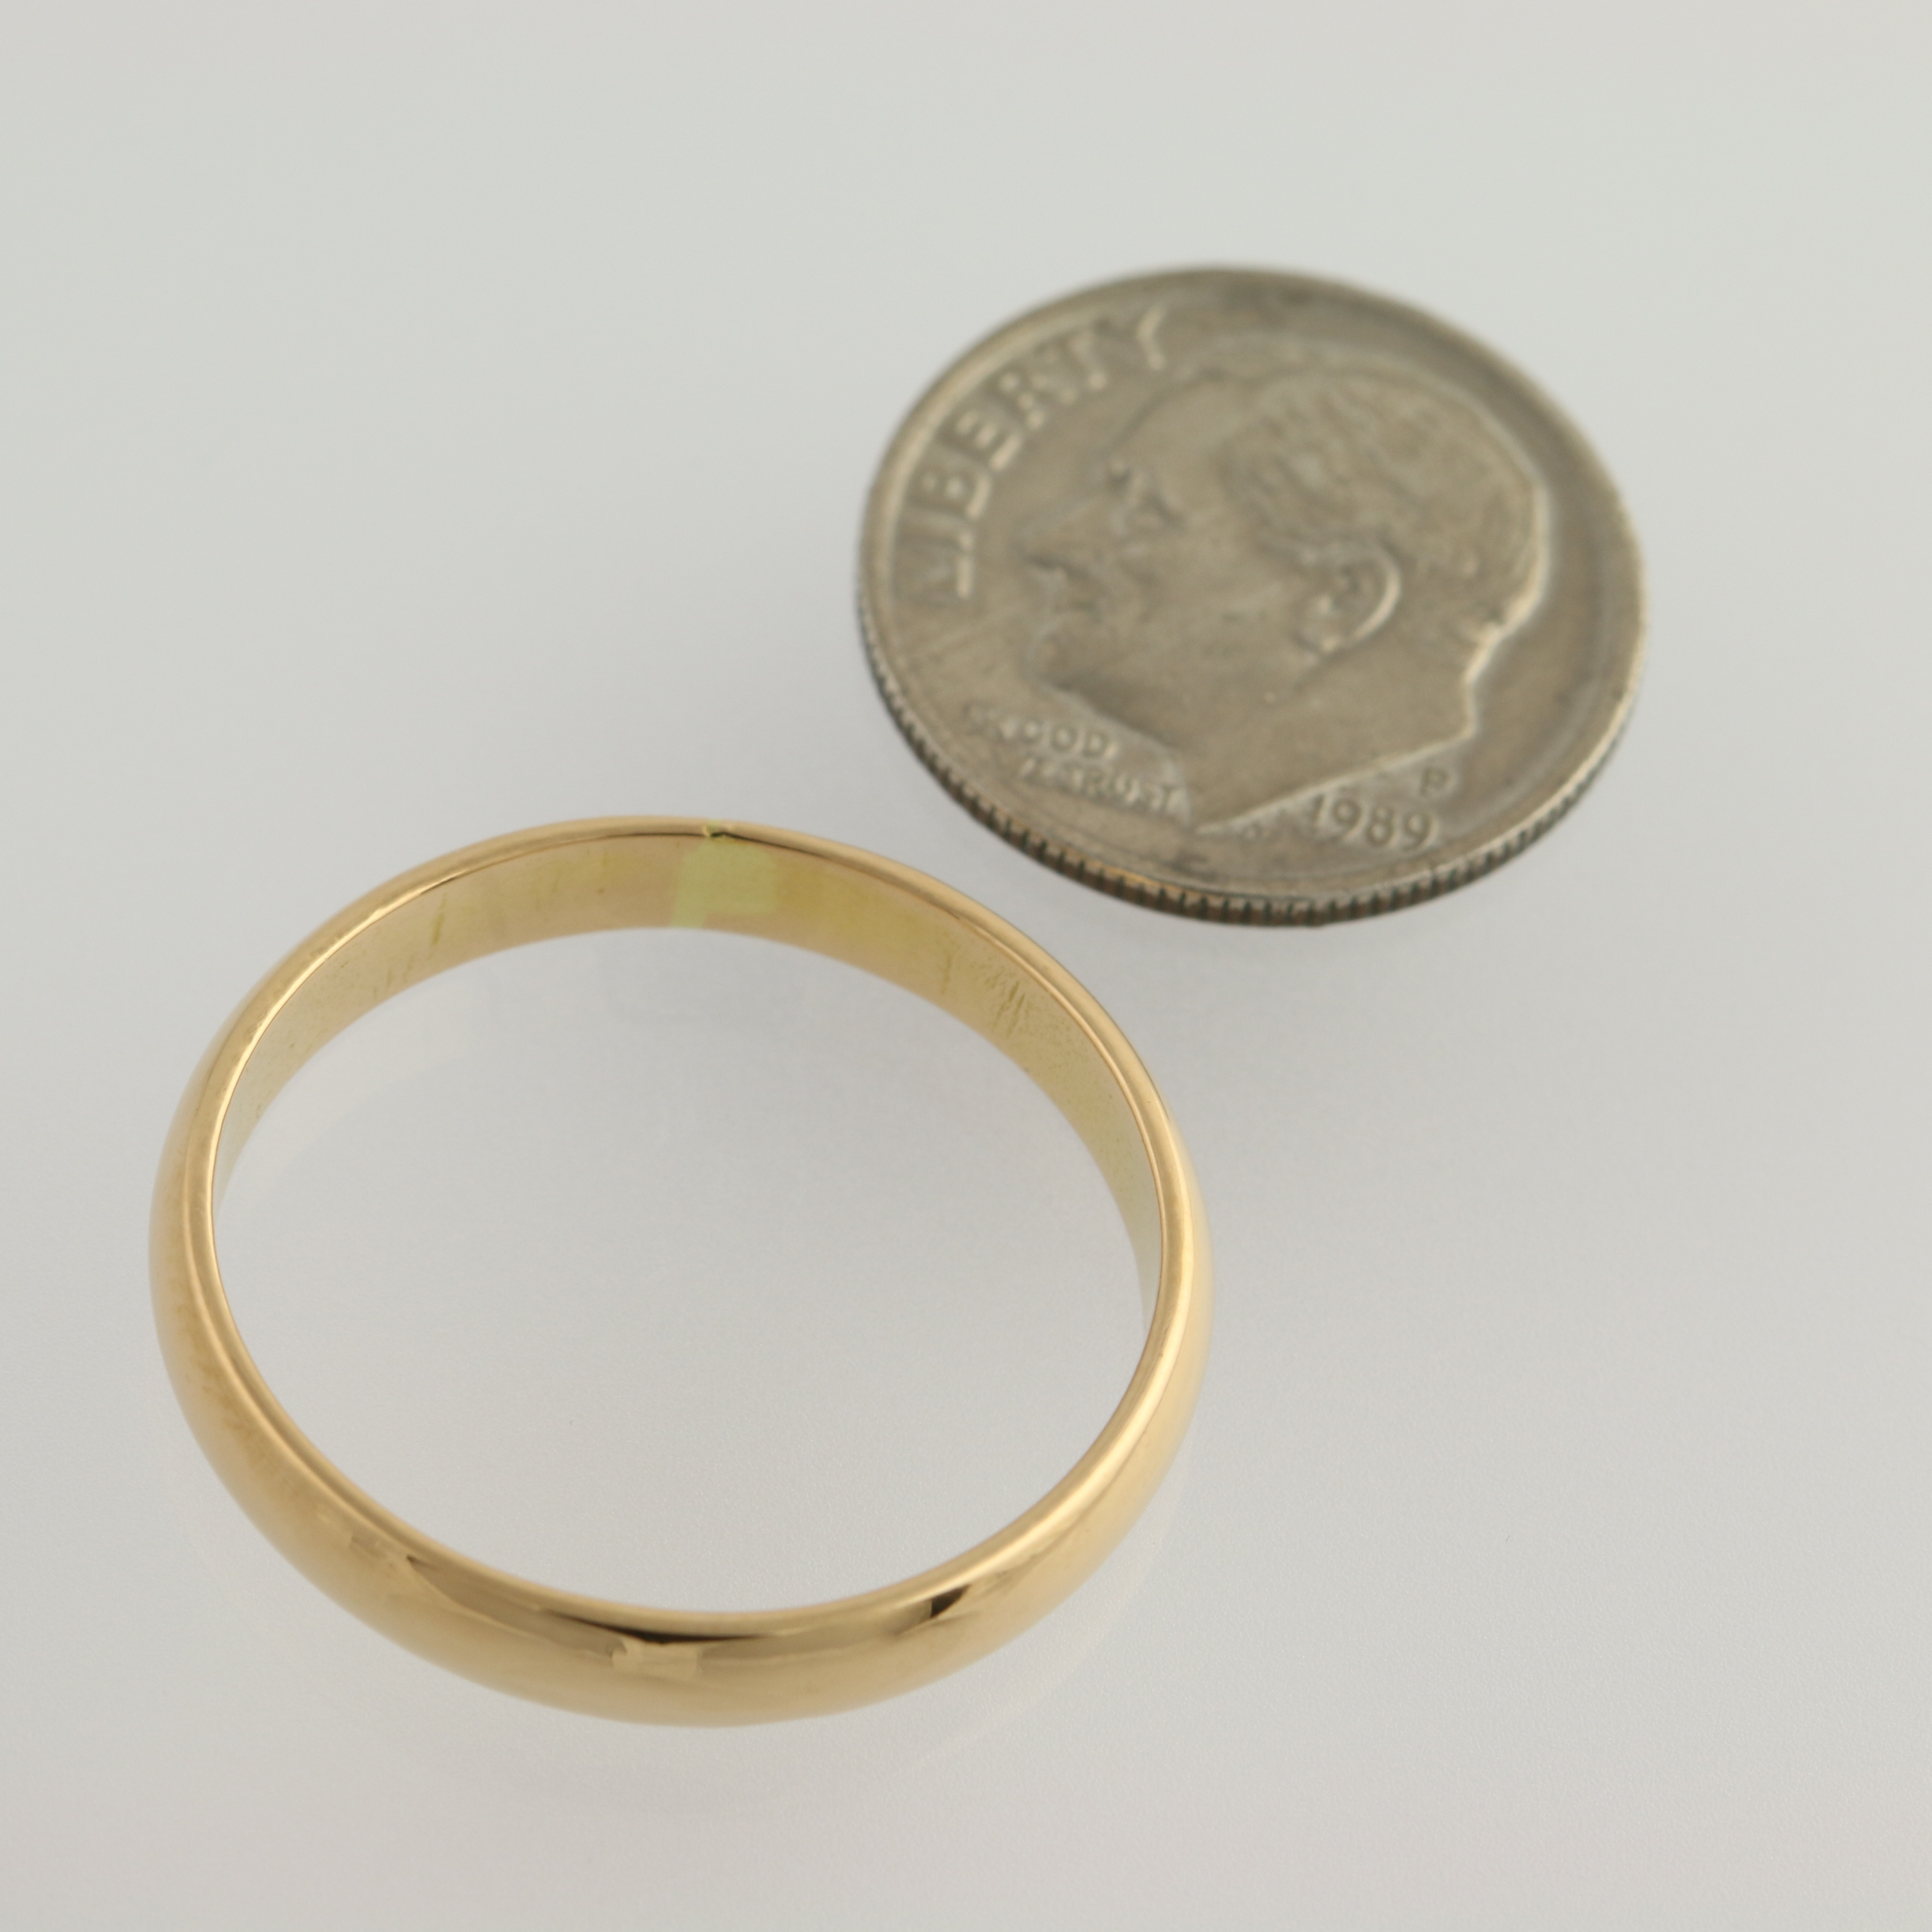 classic gold wedding band 21k yellow gold s 10 1 2